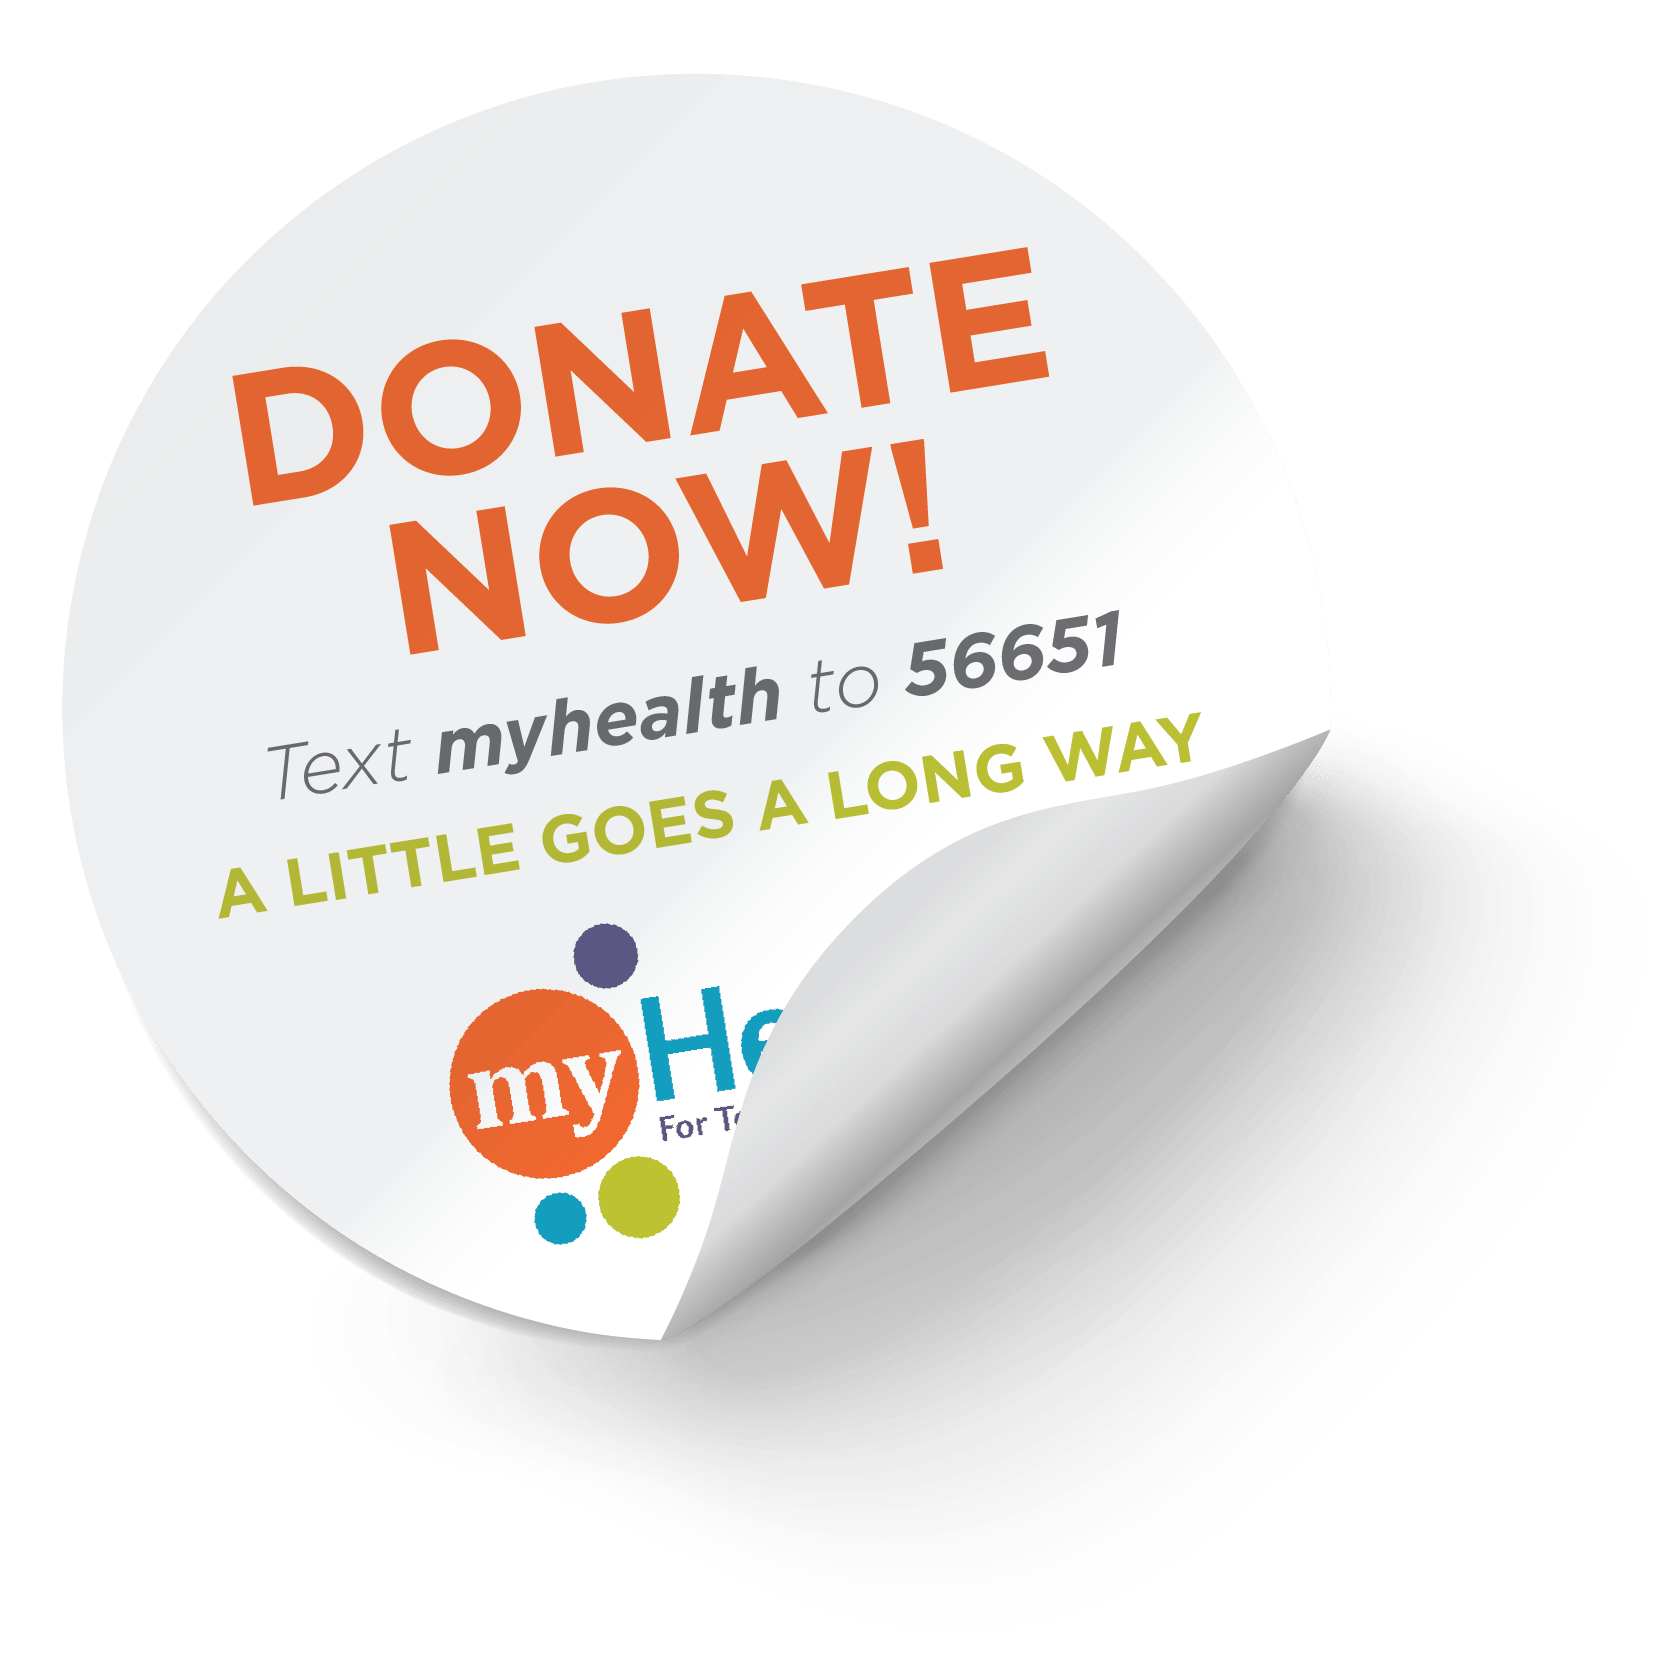 Donate now! Text myHealth to 56651. A little goes a long way.